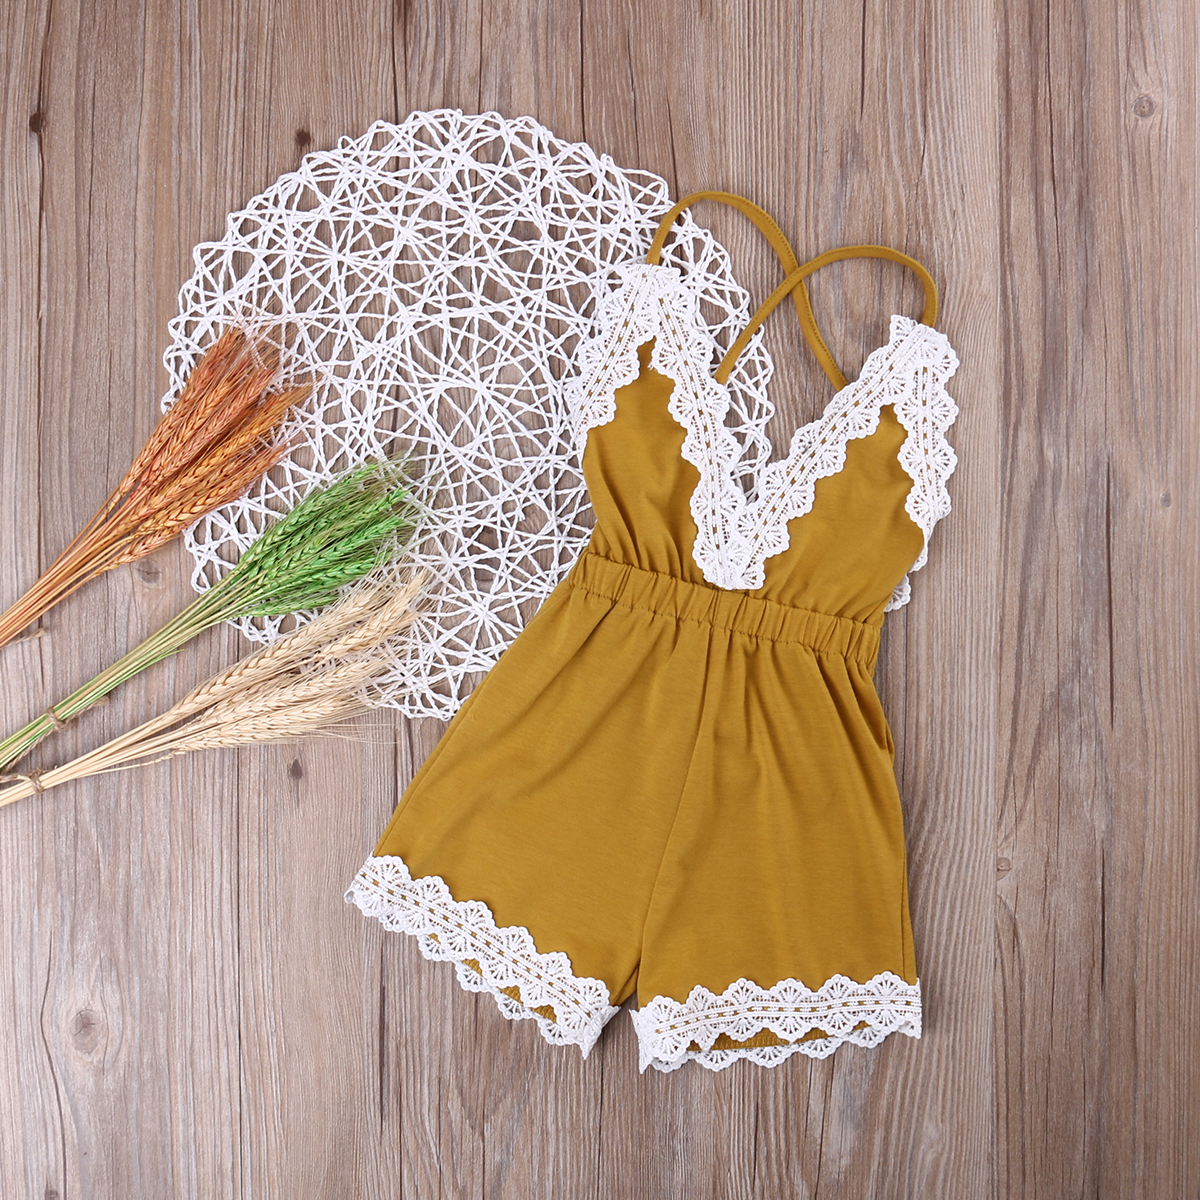 Adorable Newborn Baby Girls Clothing Romper Sleeveless Backless V Neck Jumpsuit Flower Outfits Clothes New v neck solid color convertible jumpsuit